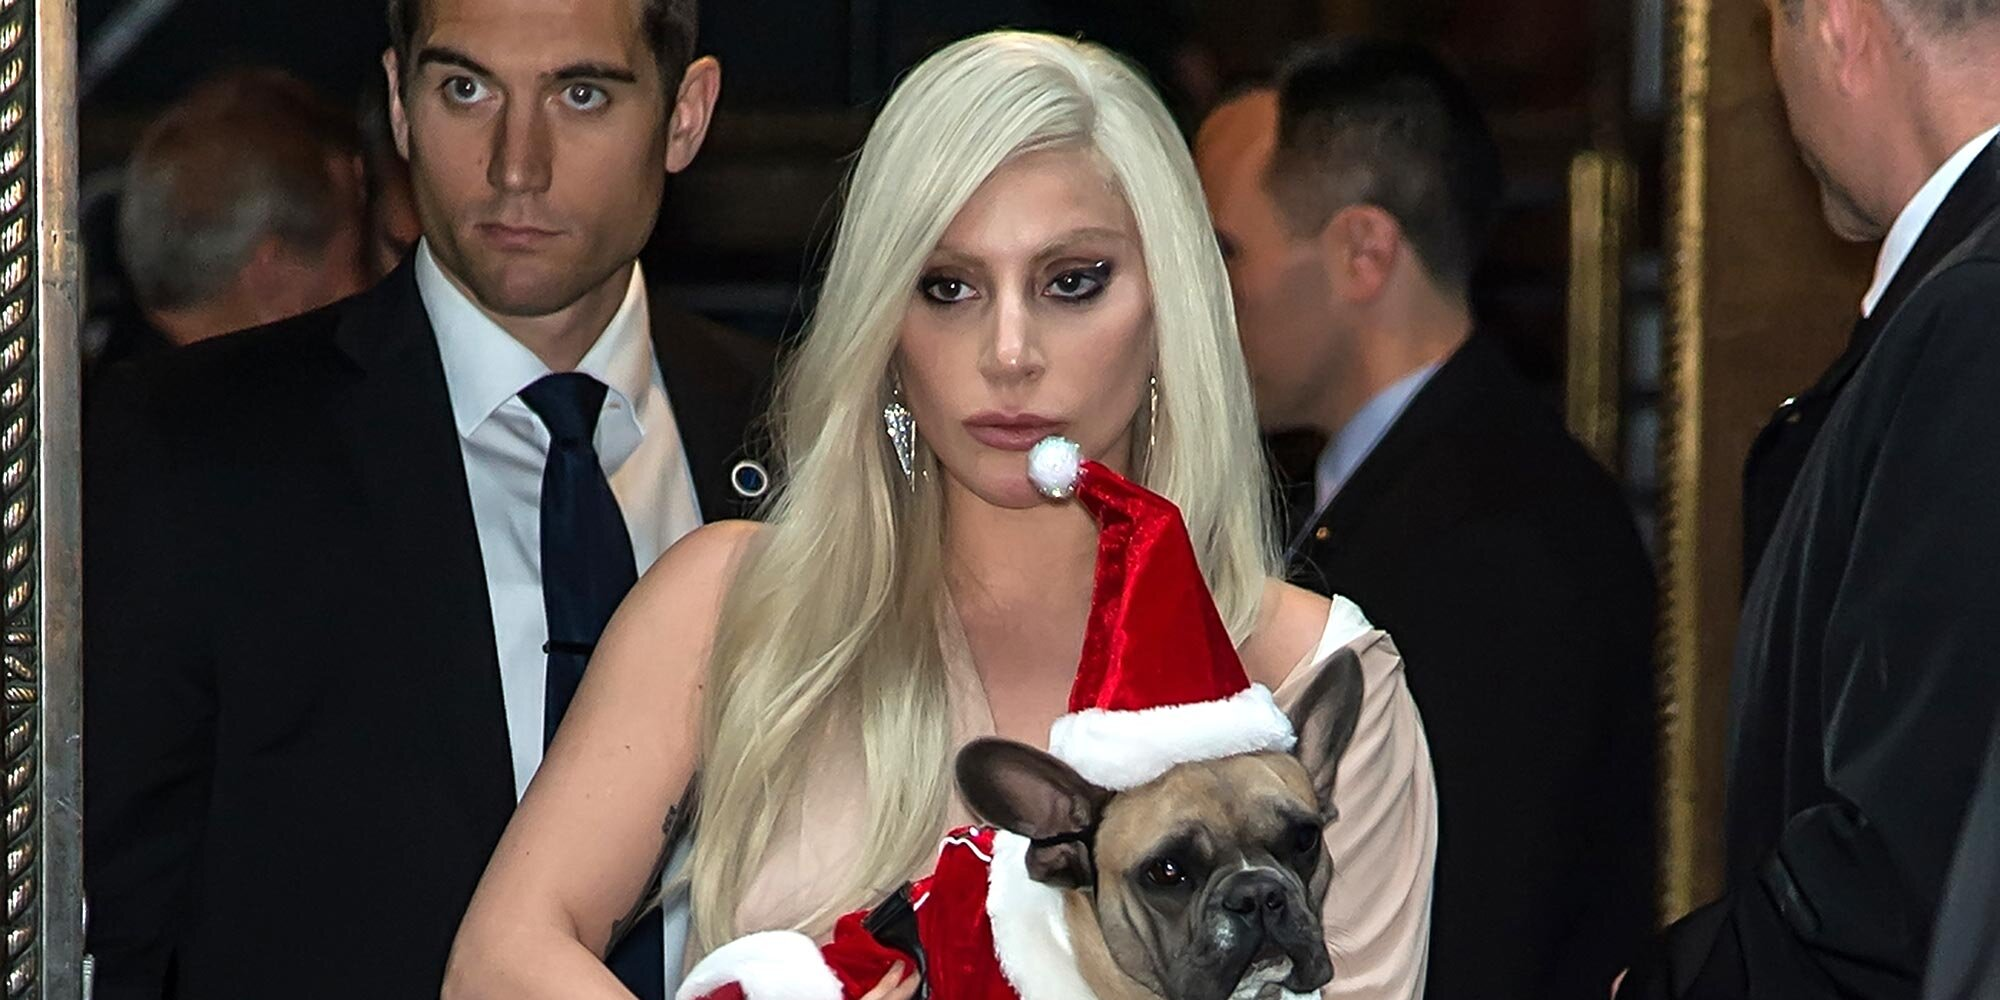 Lady Gaga offers $500,000 reward for the return of her dogs stolen at gunpoint